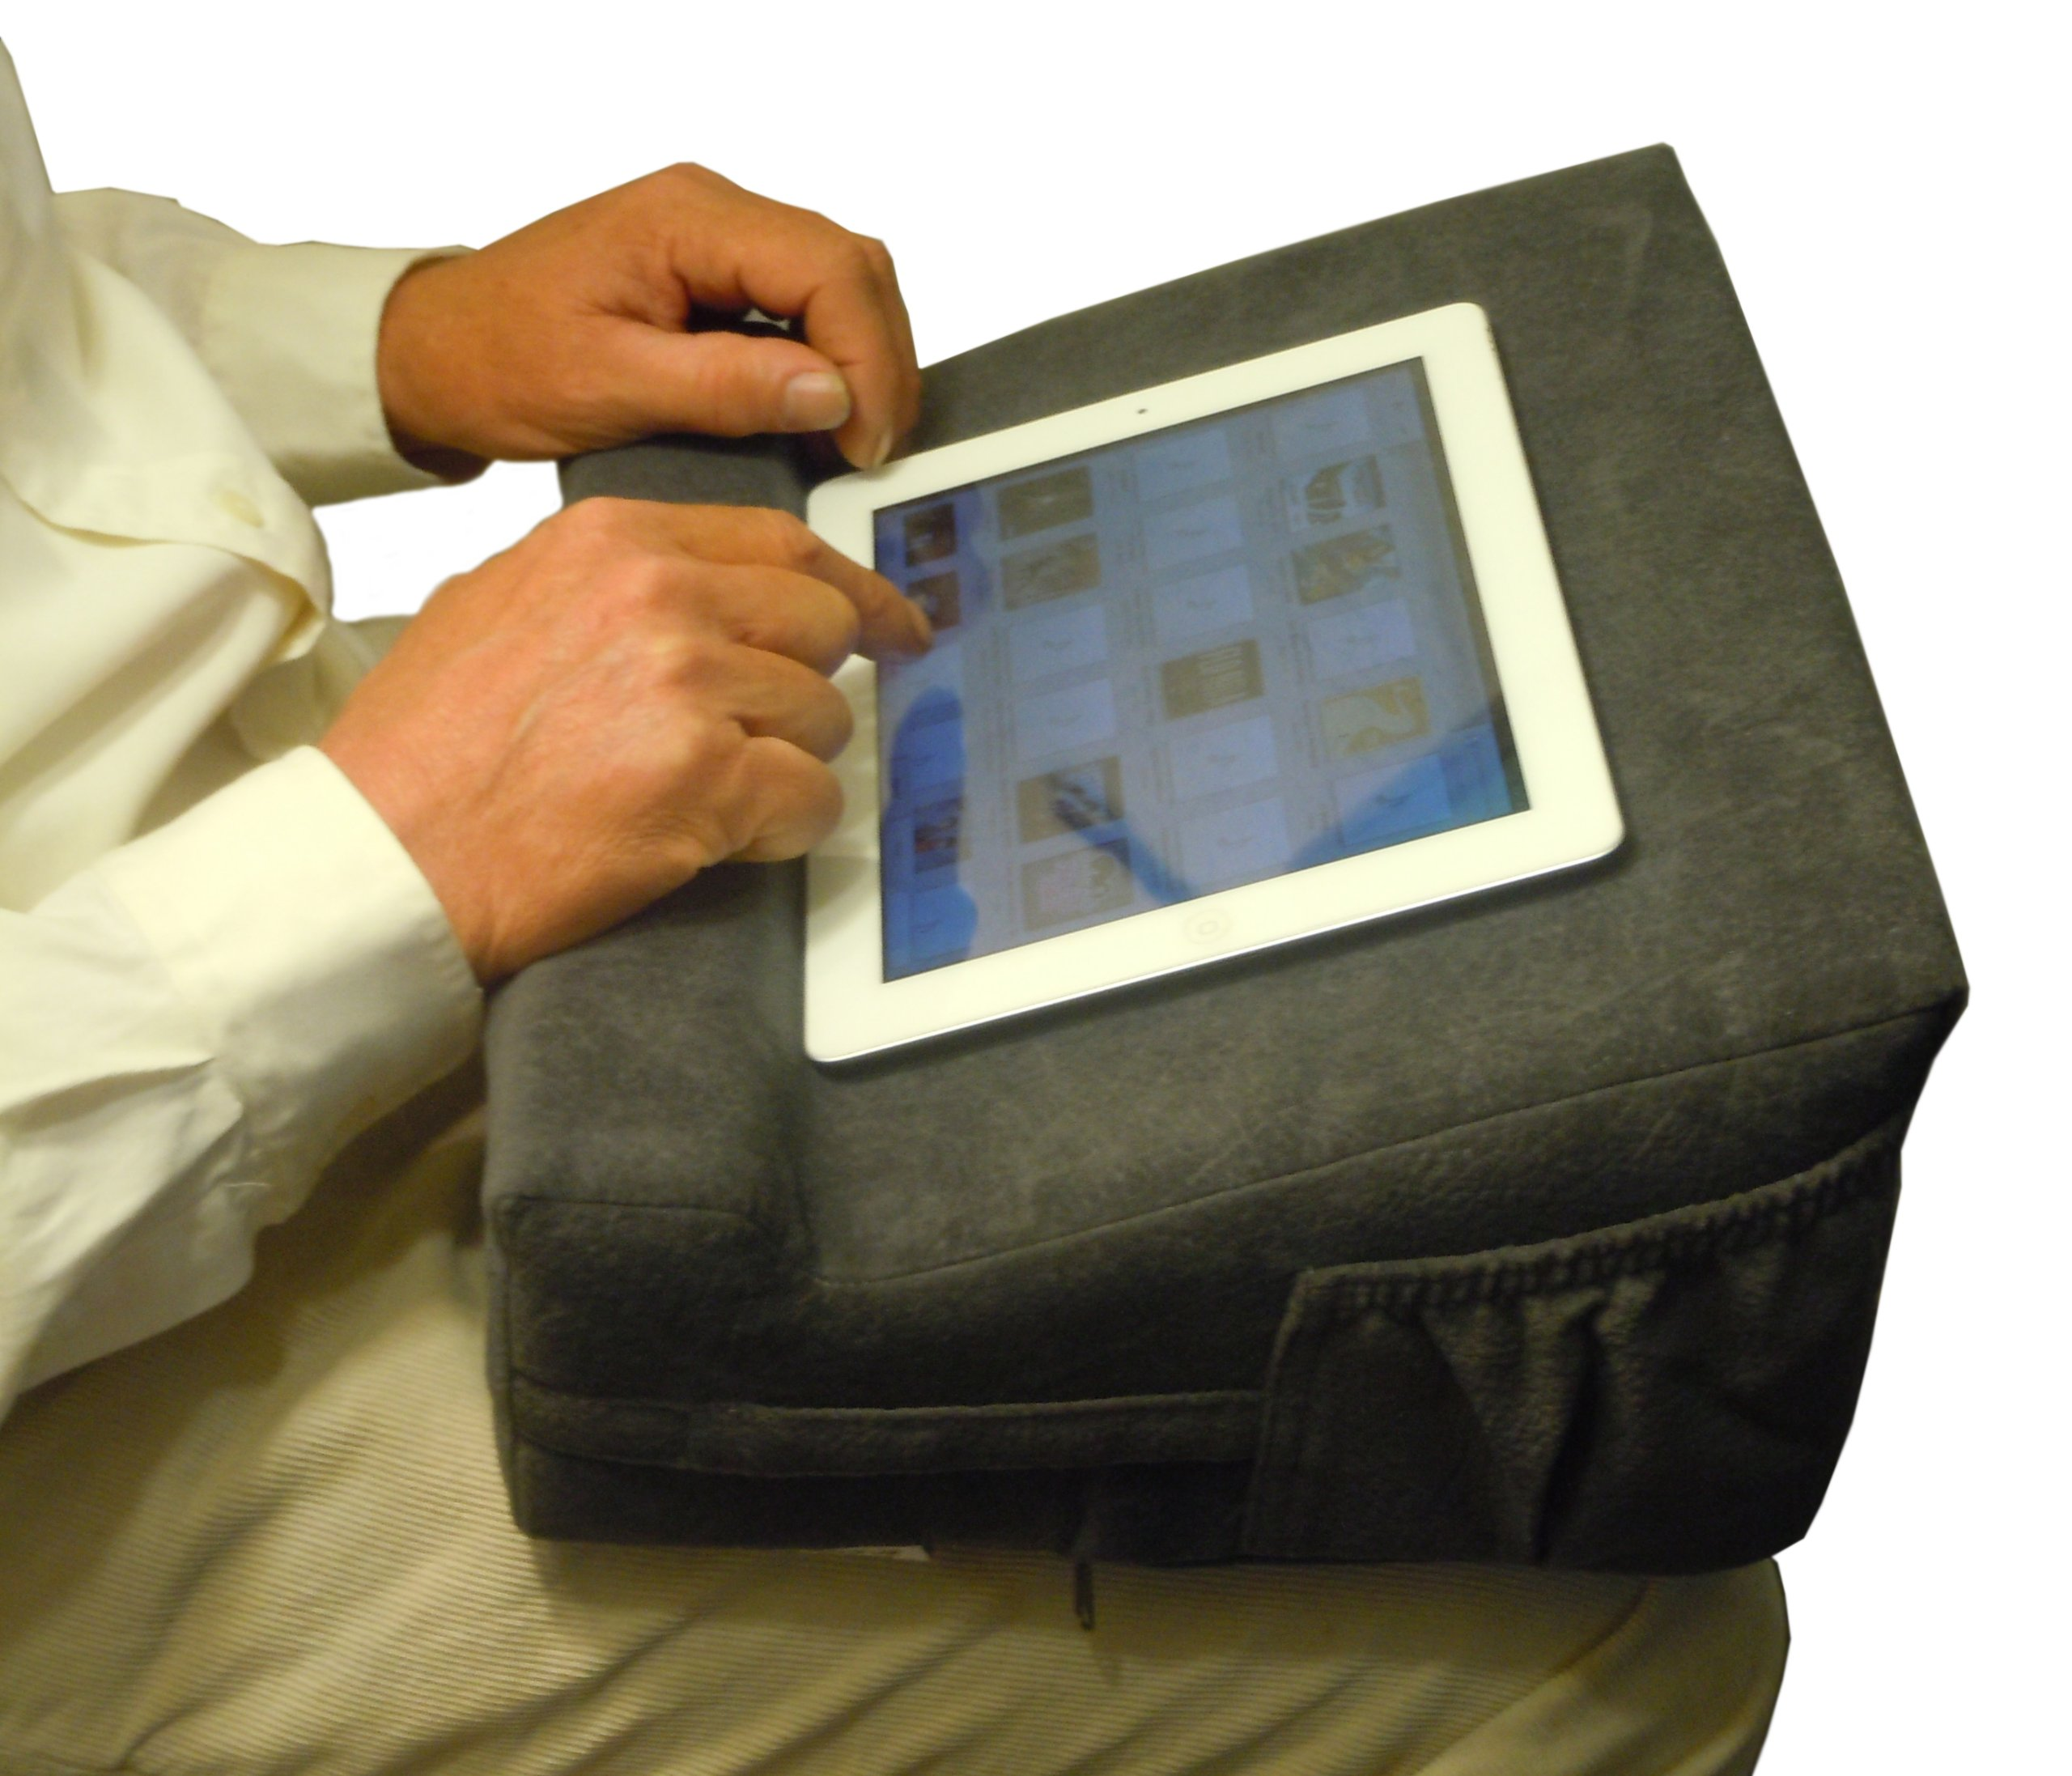 Lap Top Easel. Portable Mobile Ergonomic Laptop Computer Desk & Desktop Book Stand with Orthopedic Wrist Support. by Tip Pedic. (Image #3)